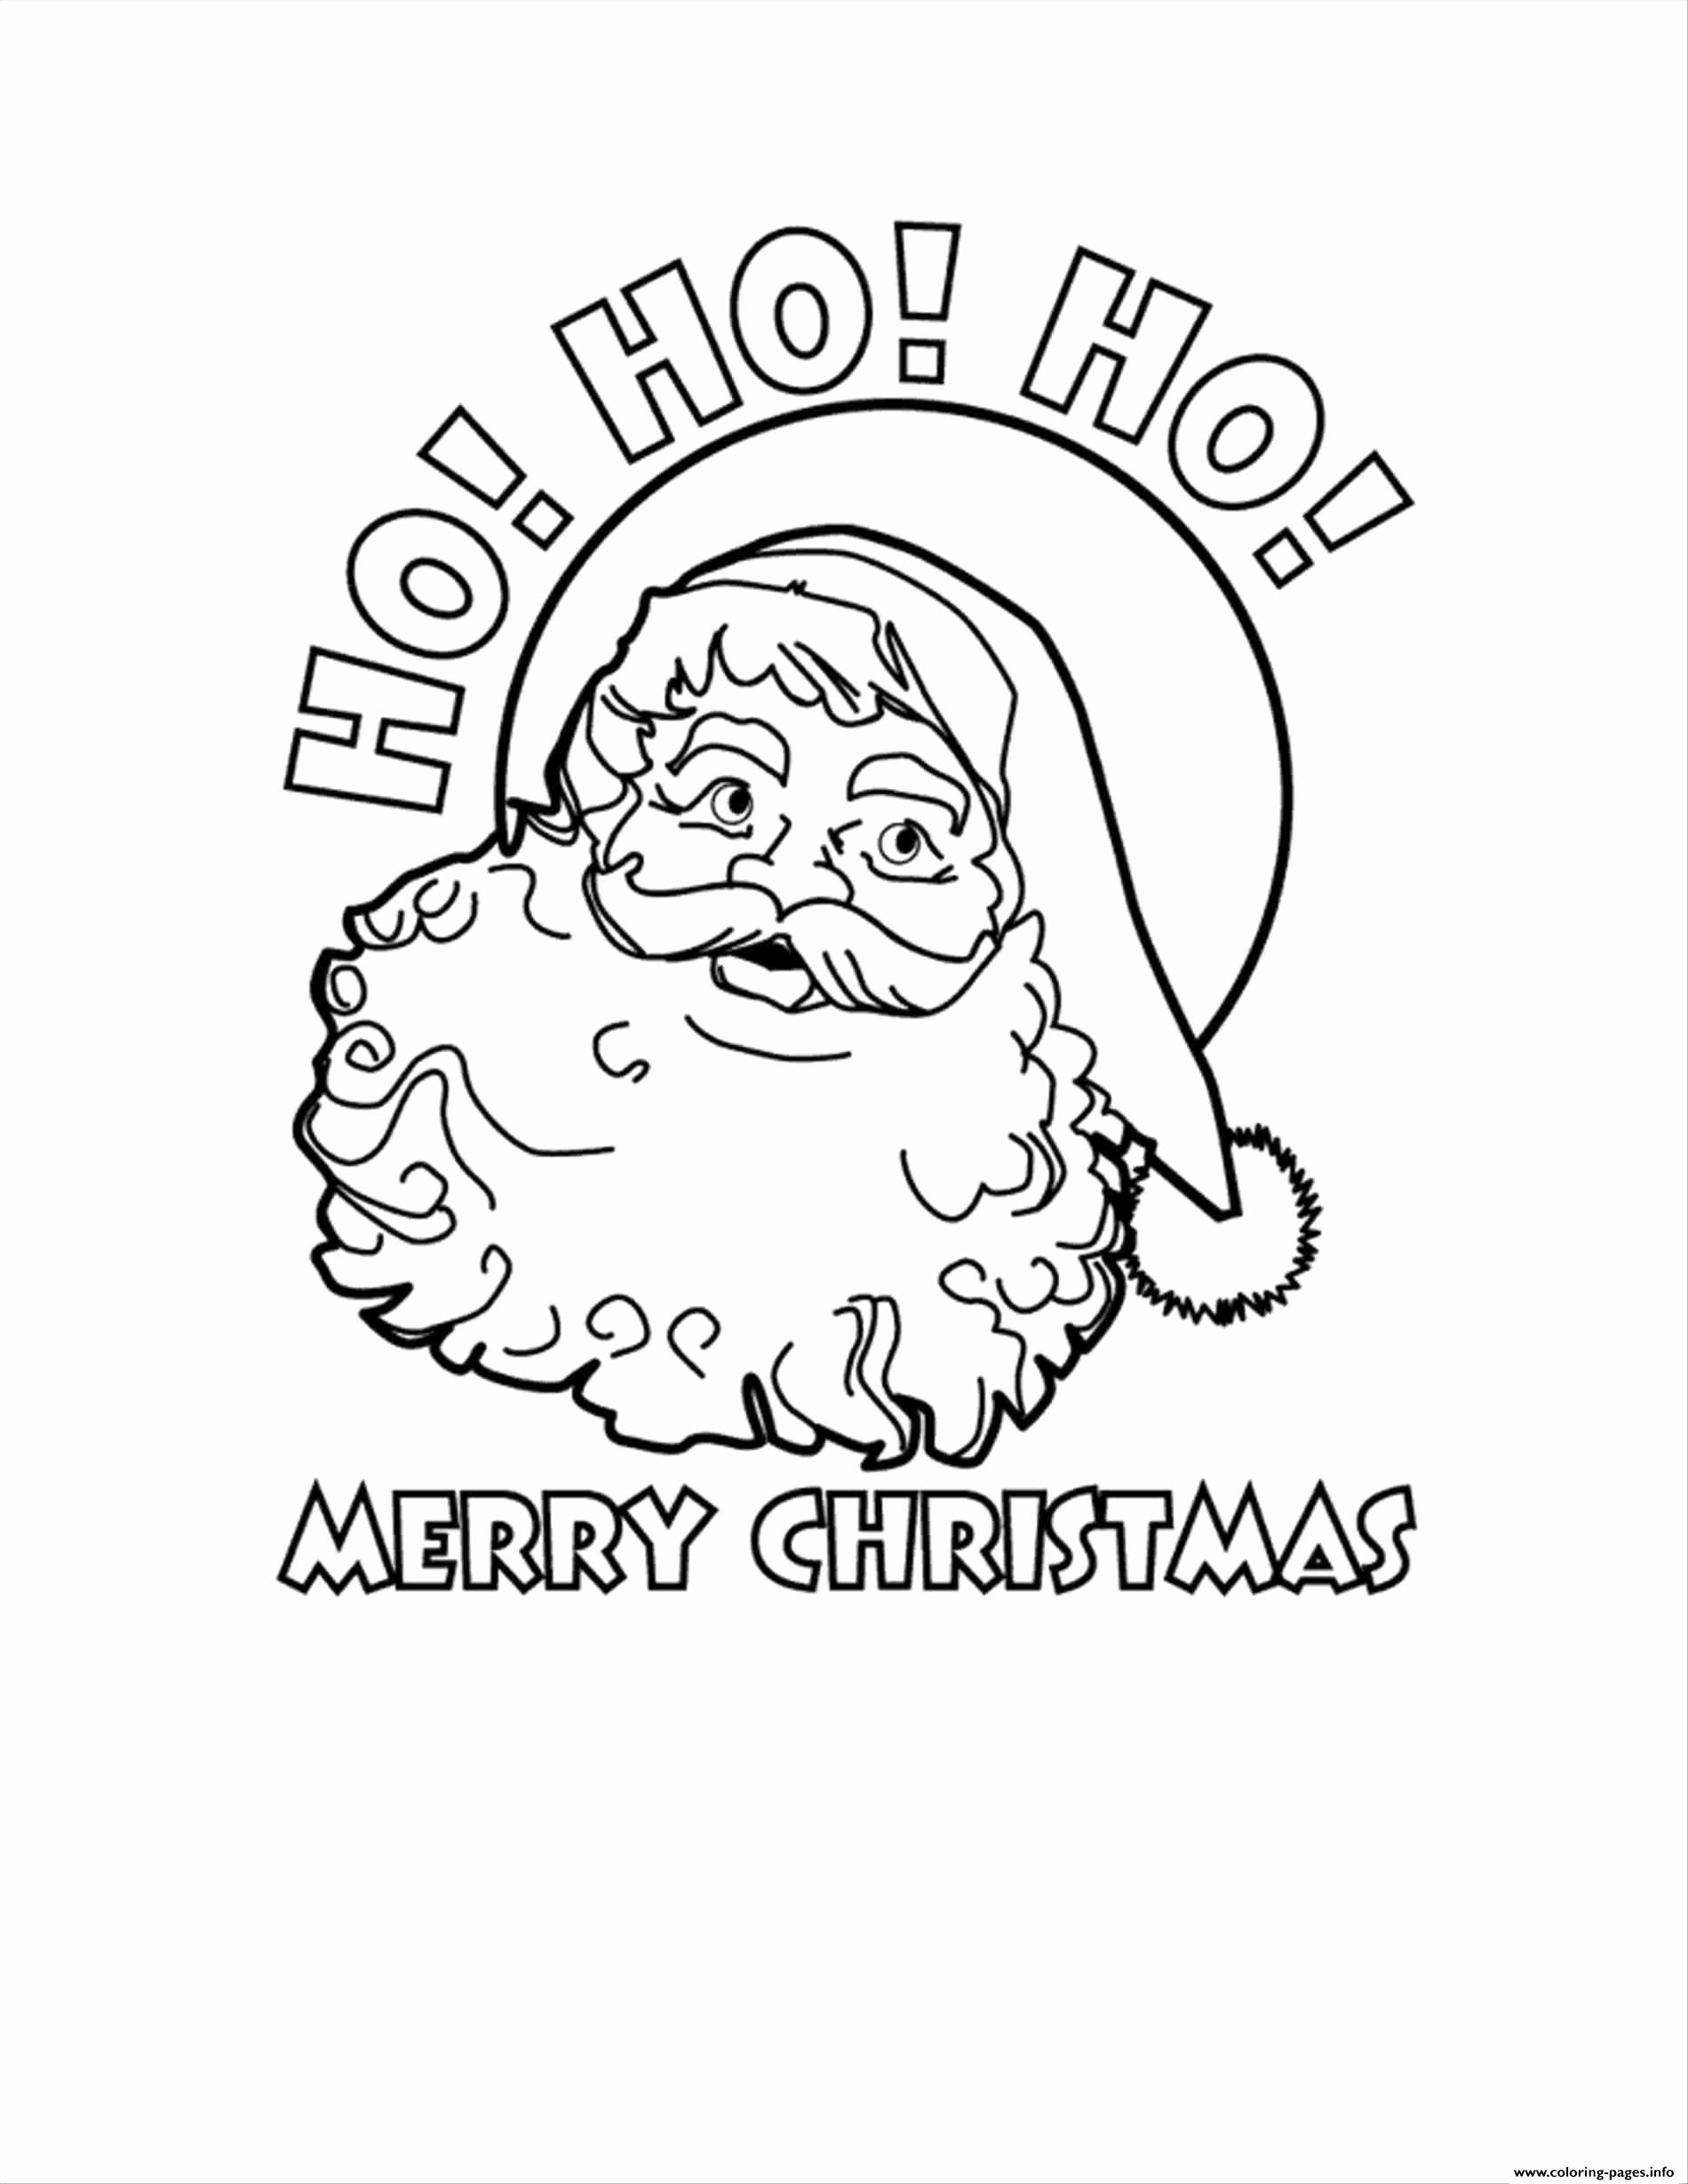 Xmas Coloring Sheets Printable Awesome Coloring Ideas Fabulous Merry Christmas Coloring Sheets Printable Christmas Cards Free Printable Christmas Cards Merry Christmas Card